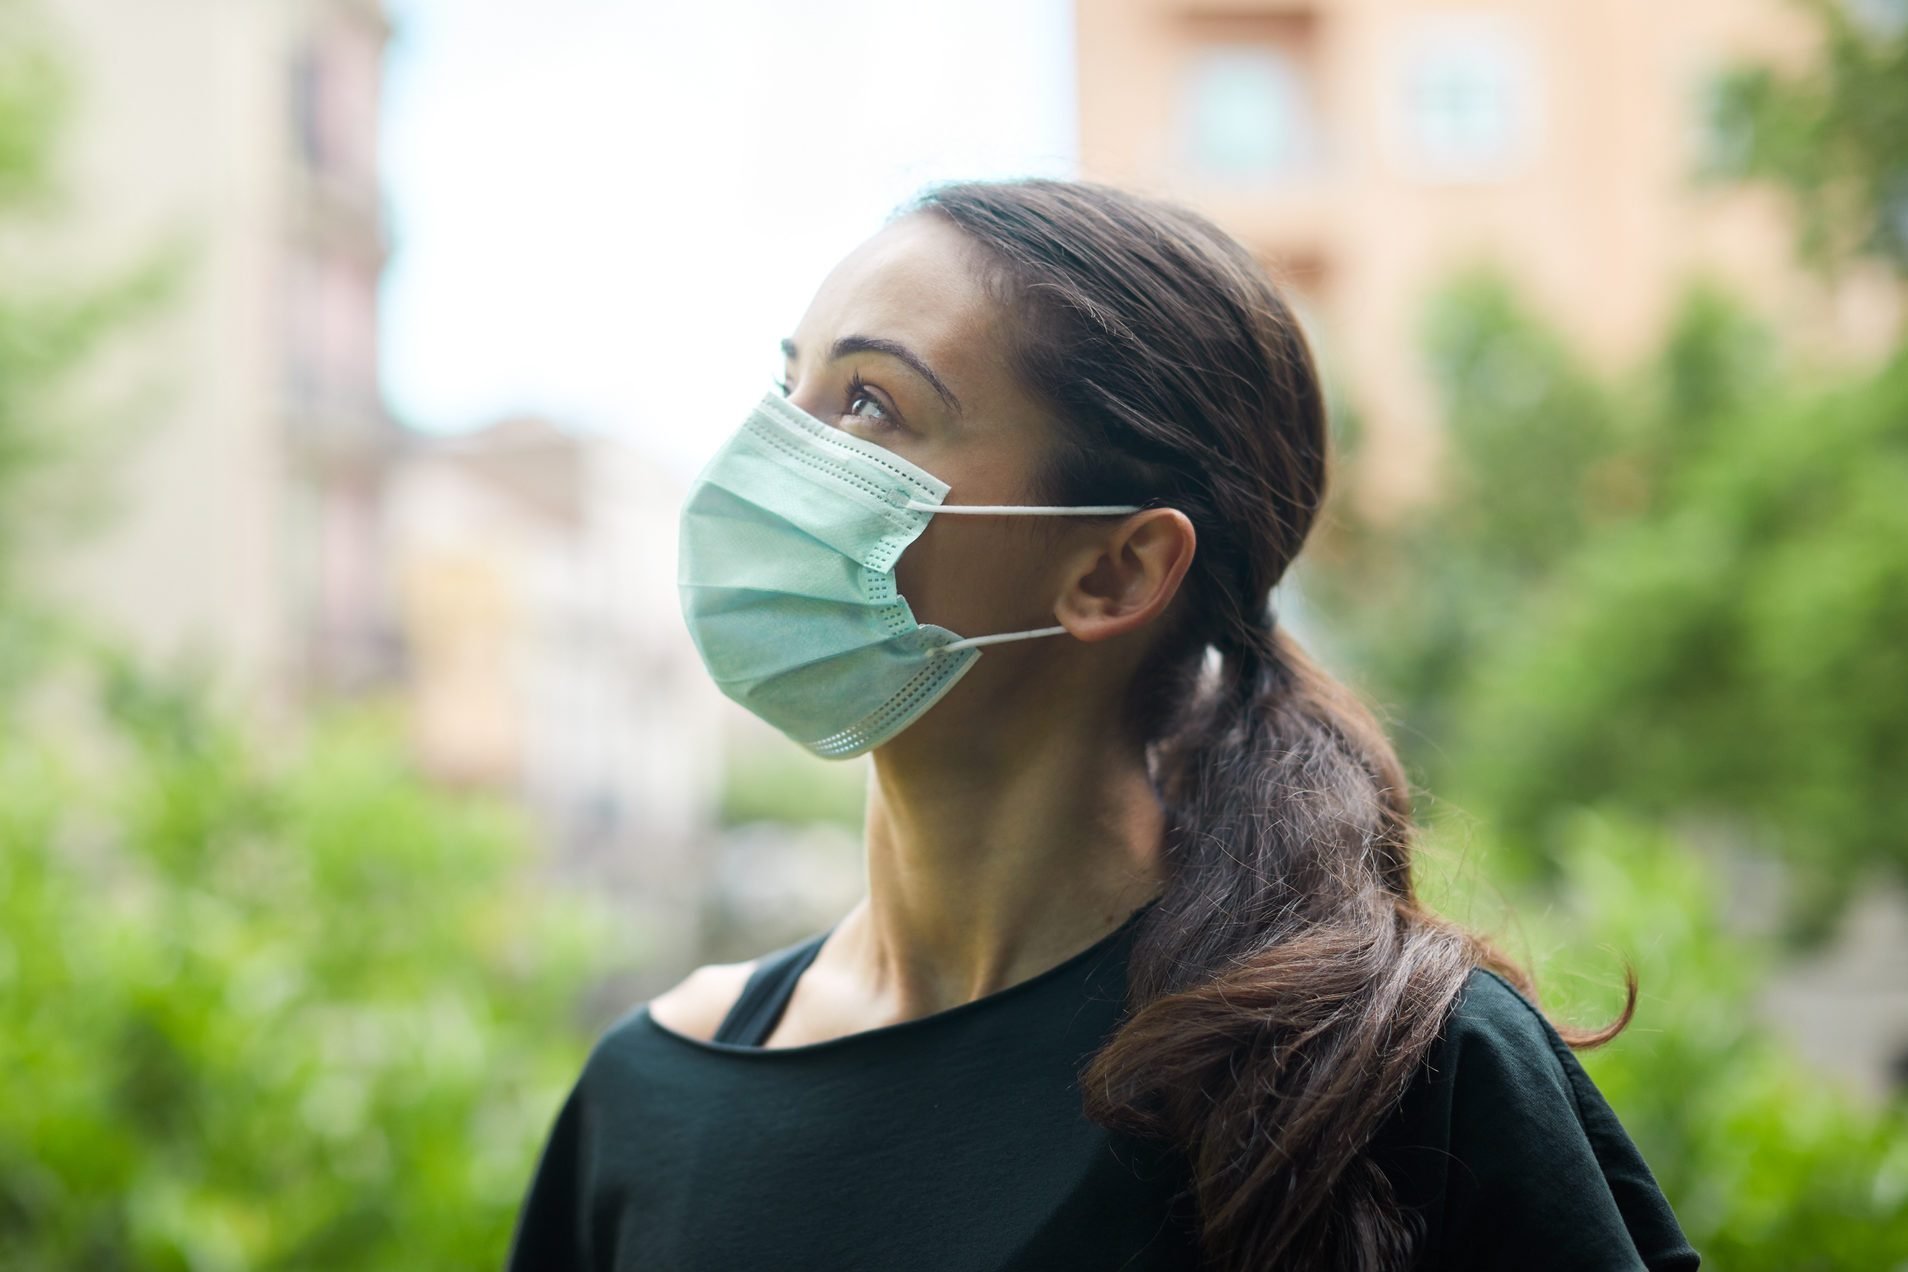 One young woman wearing a surgical mask outdoor